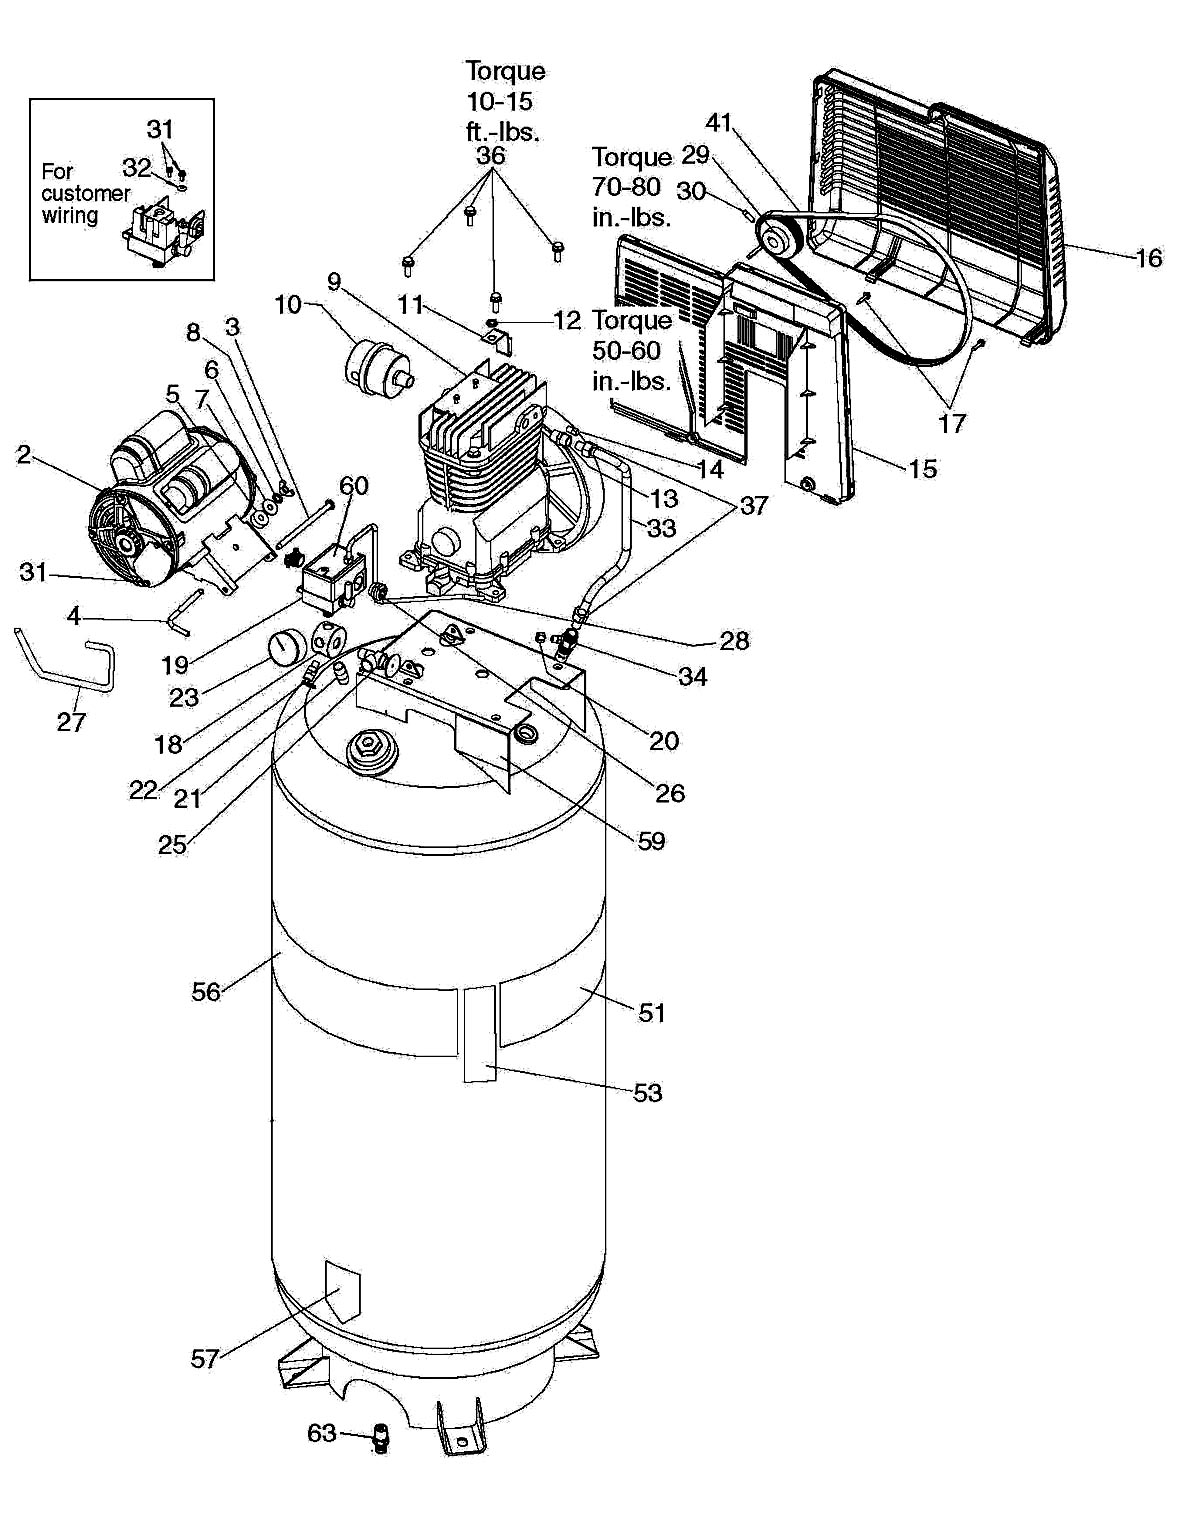 Sears Craftsman_919.184191_parts craftsman 919 184191 parts master tool repair sears 1 hp air compressor wiring diagram at crackthecode.co